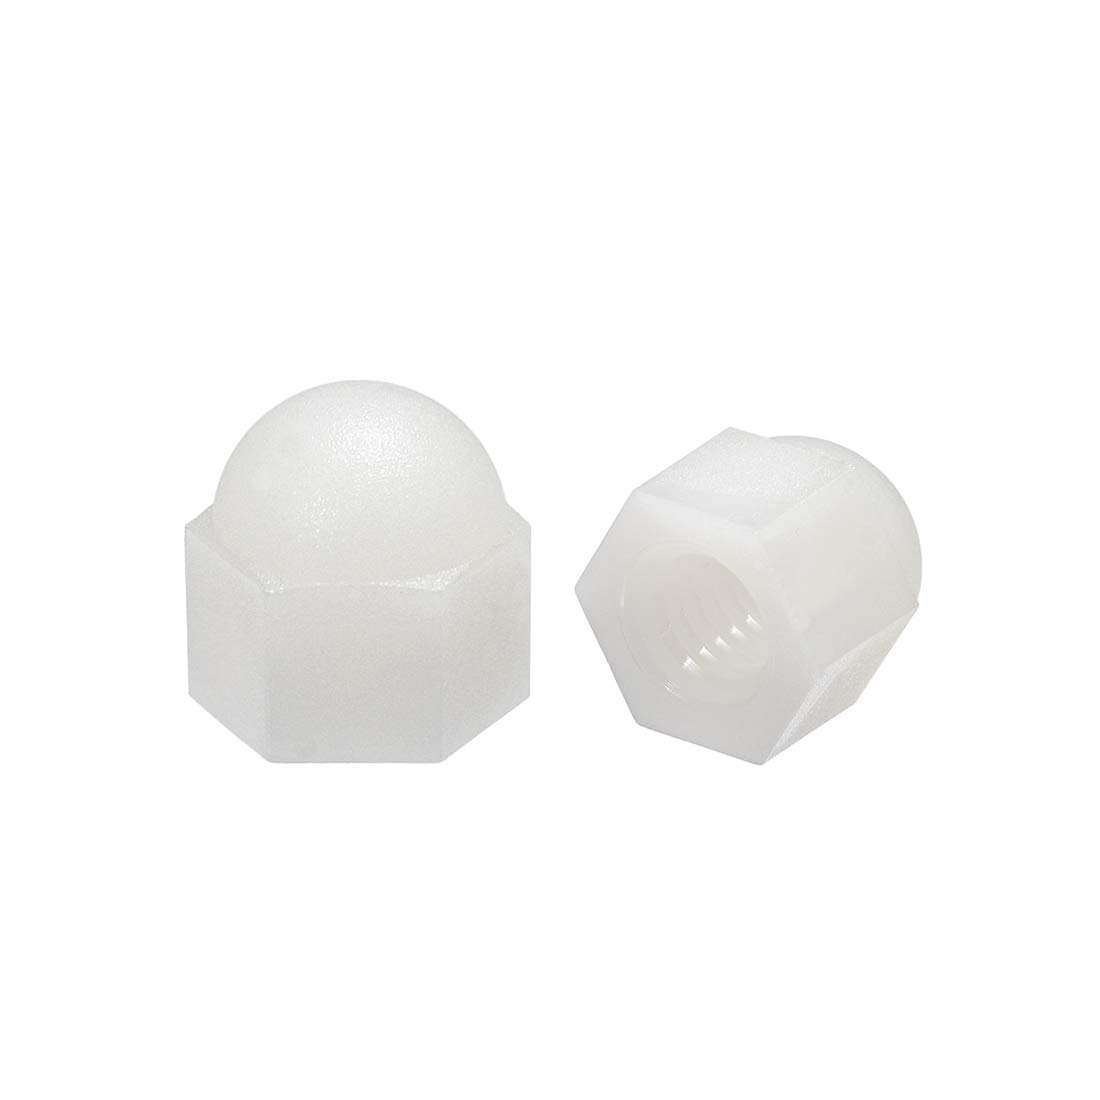 M6 Blind nut Hexagon Nuts with Dome Head for Screws Screws Bolts Nylon White 20 Pieces